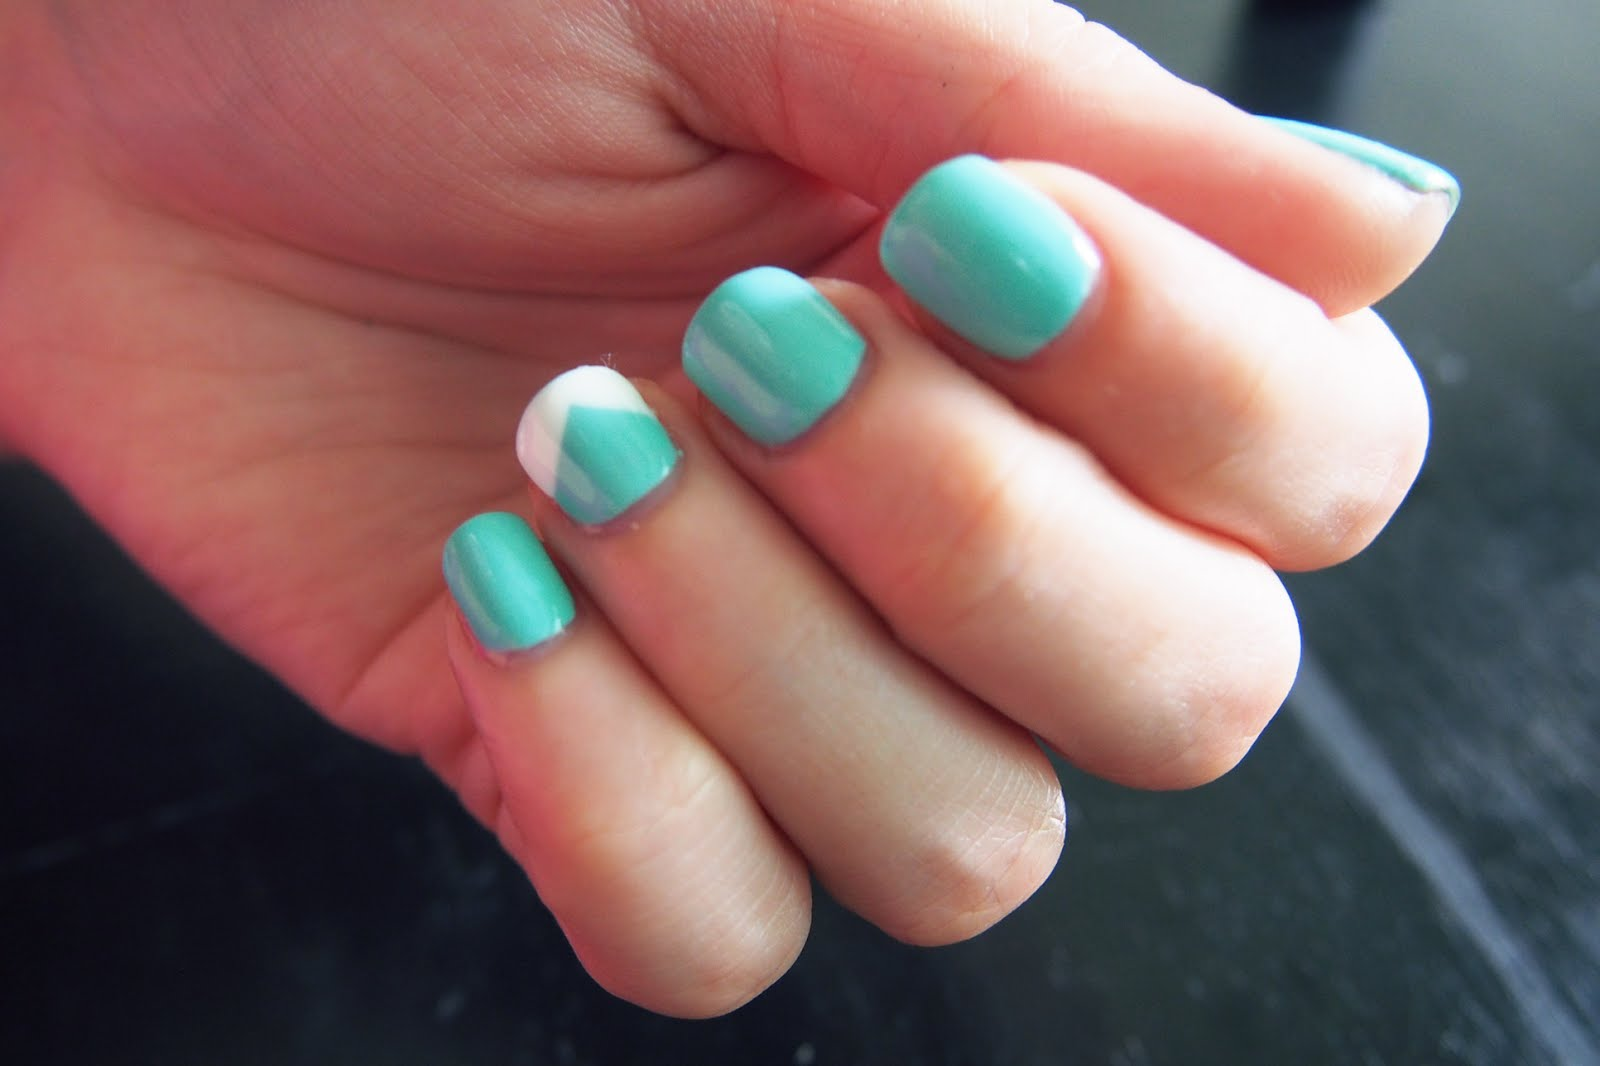 Etude House Enamelting Gel Nails Review (diy/at home gel manicure ...